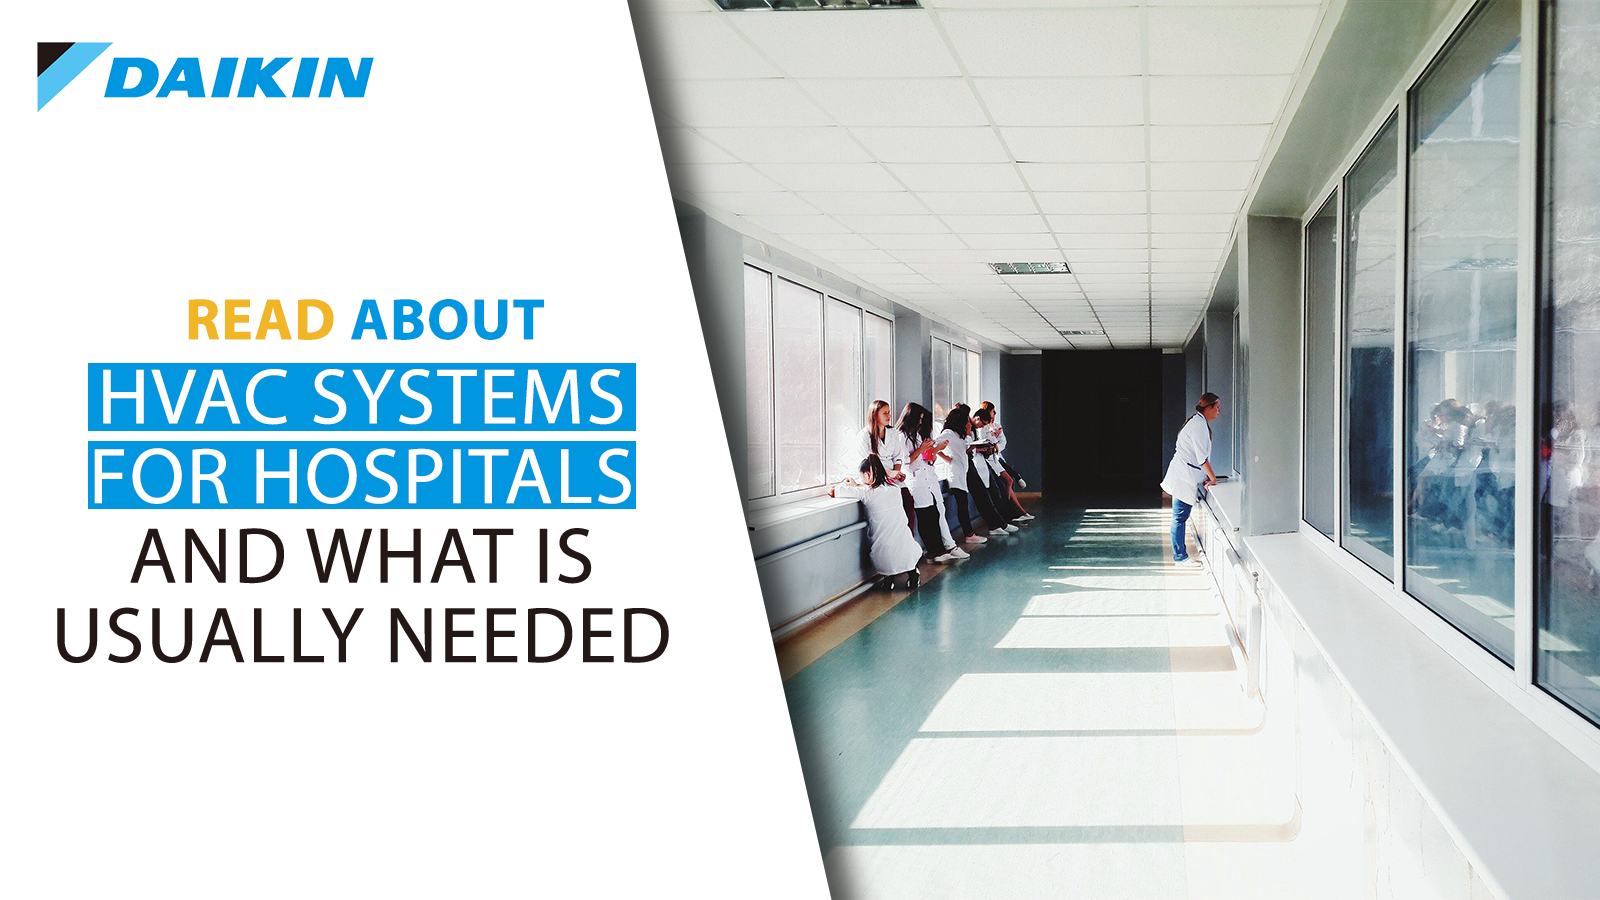 HVAC systems for hospitals